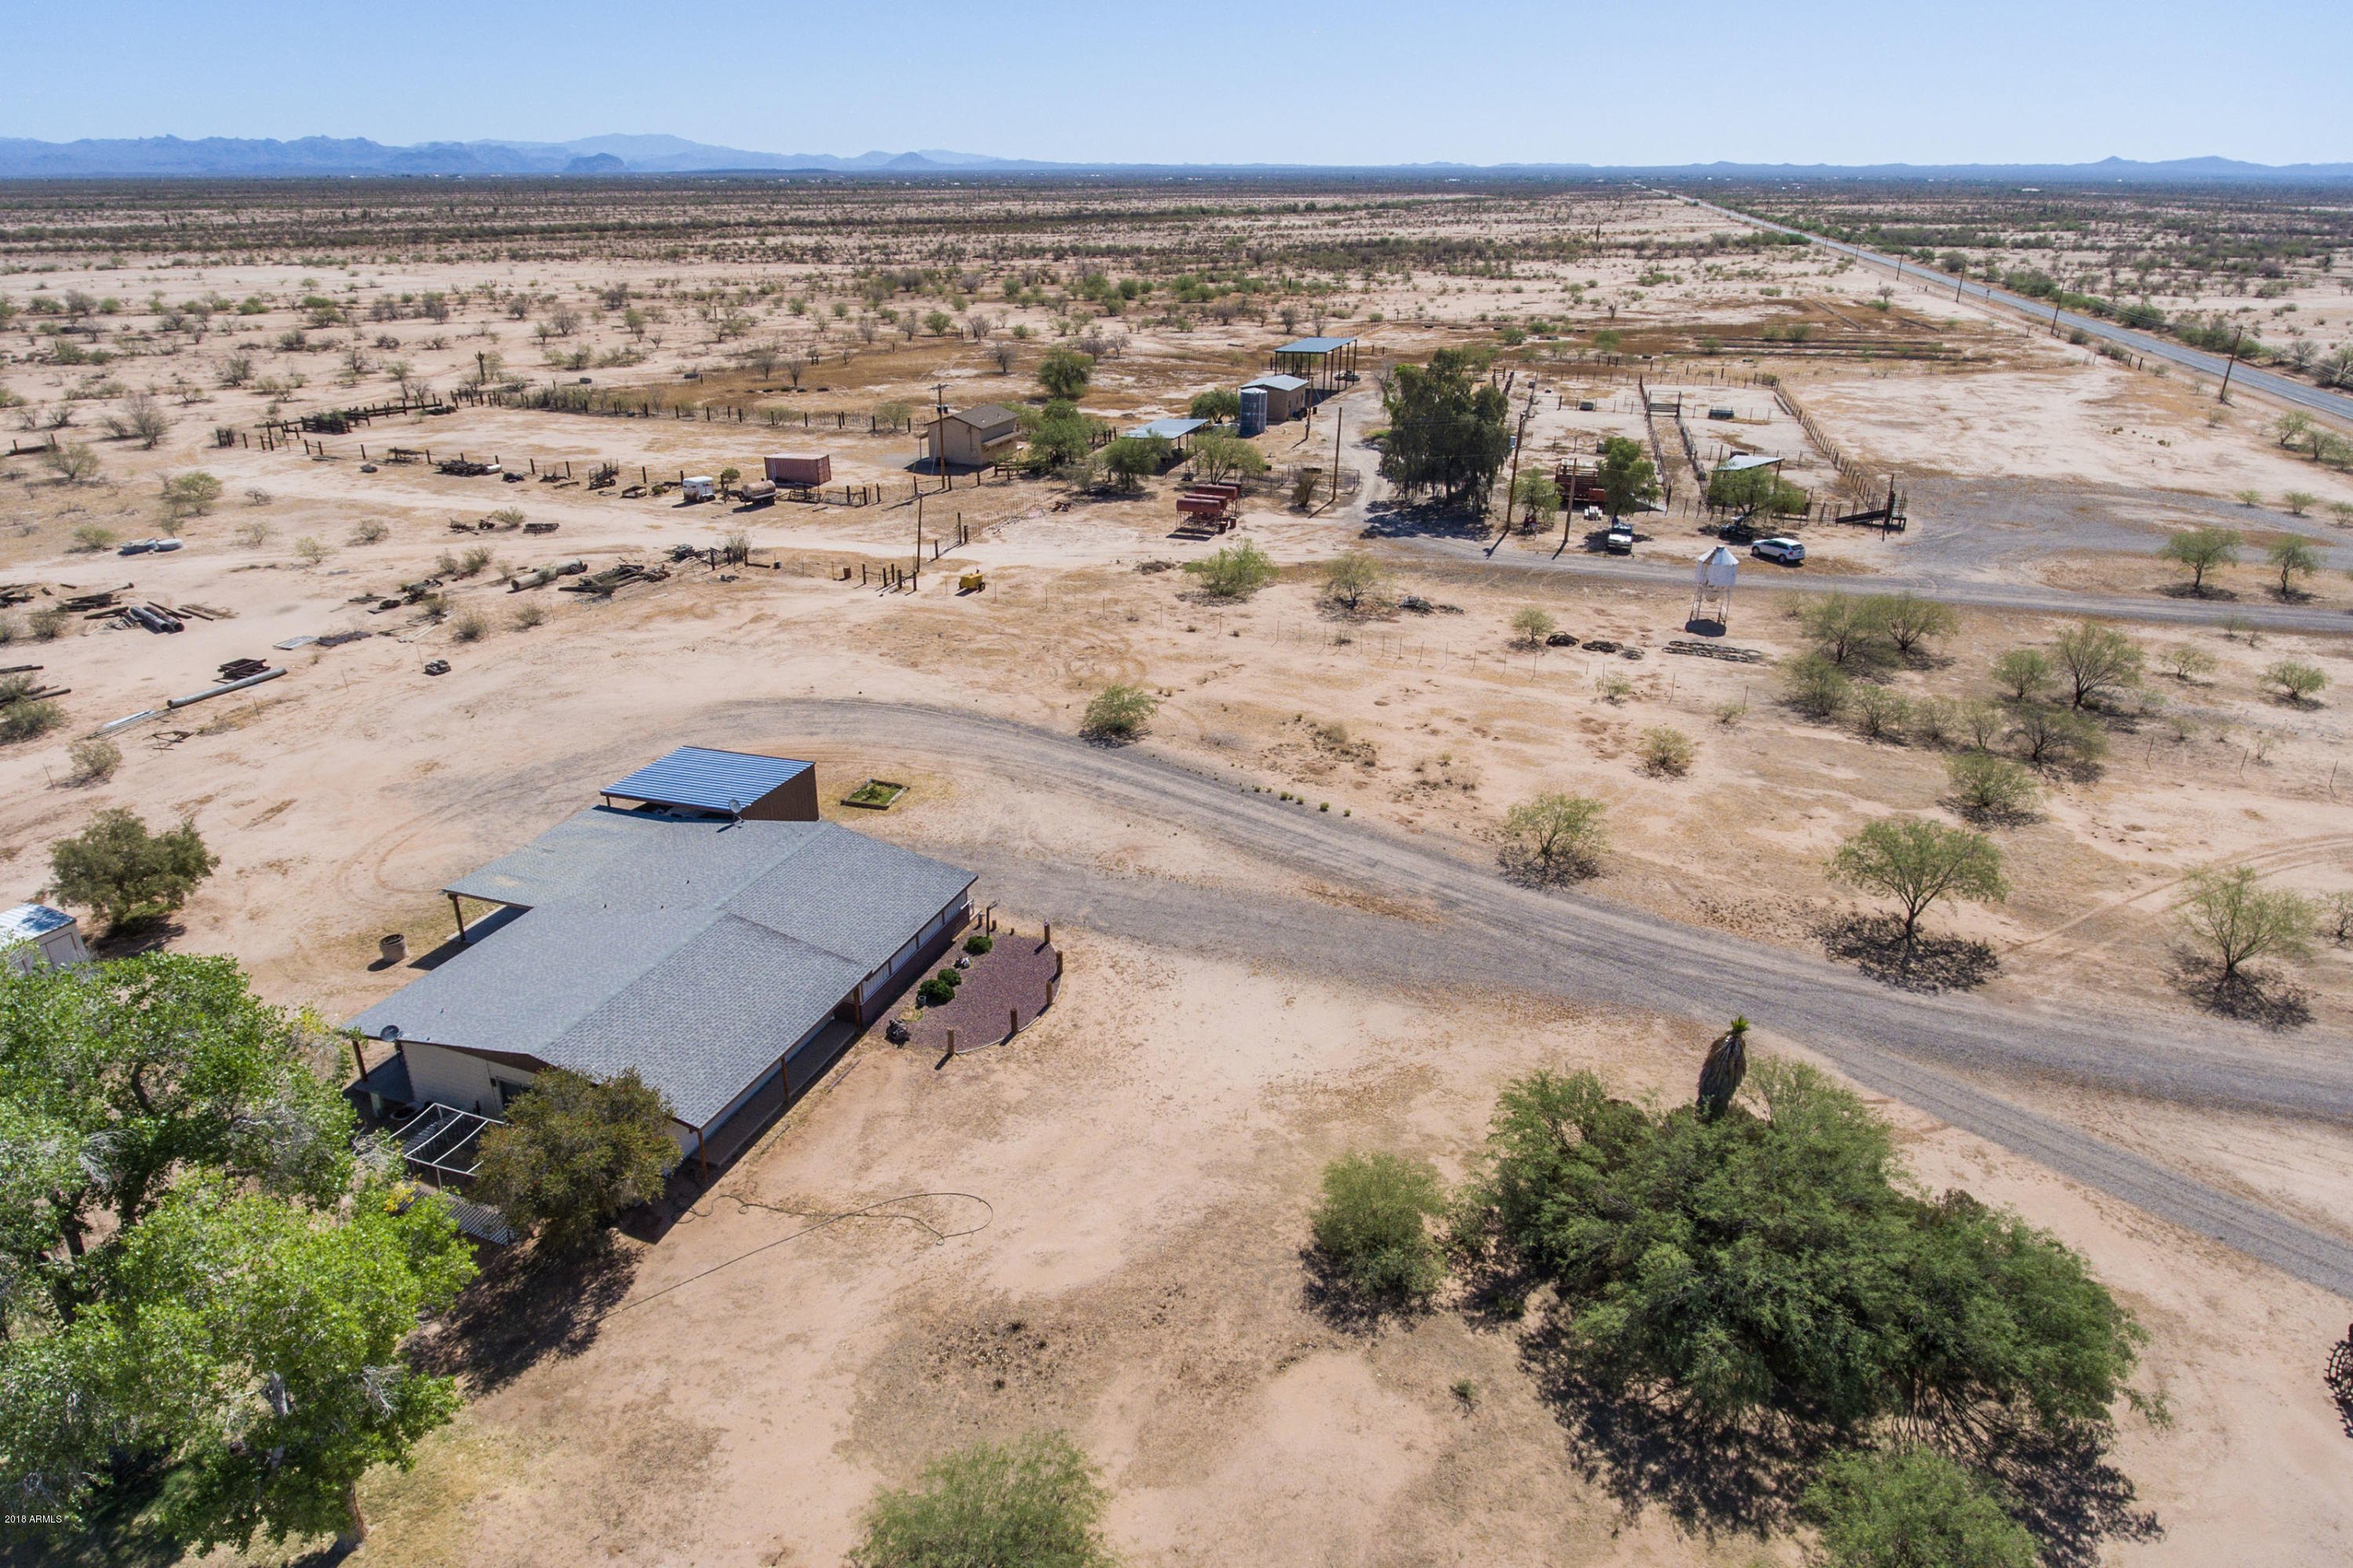 MLS 5737194 16016 E CACTUS FOREST Road, Florence, AZ 85132 Florence AZ Homes 10,000 Plus SqFt Lot